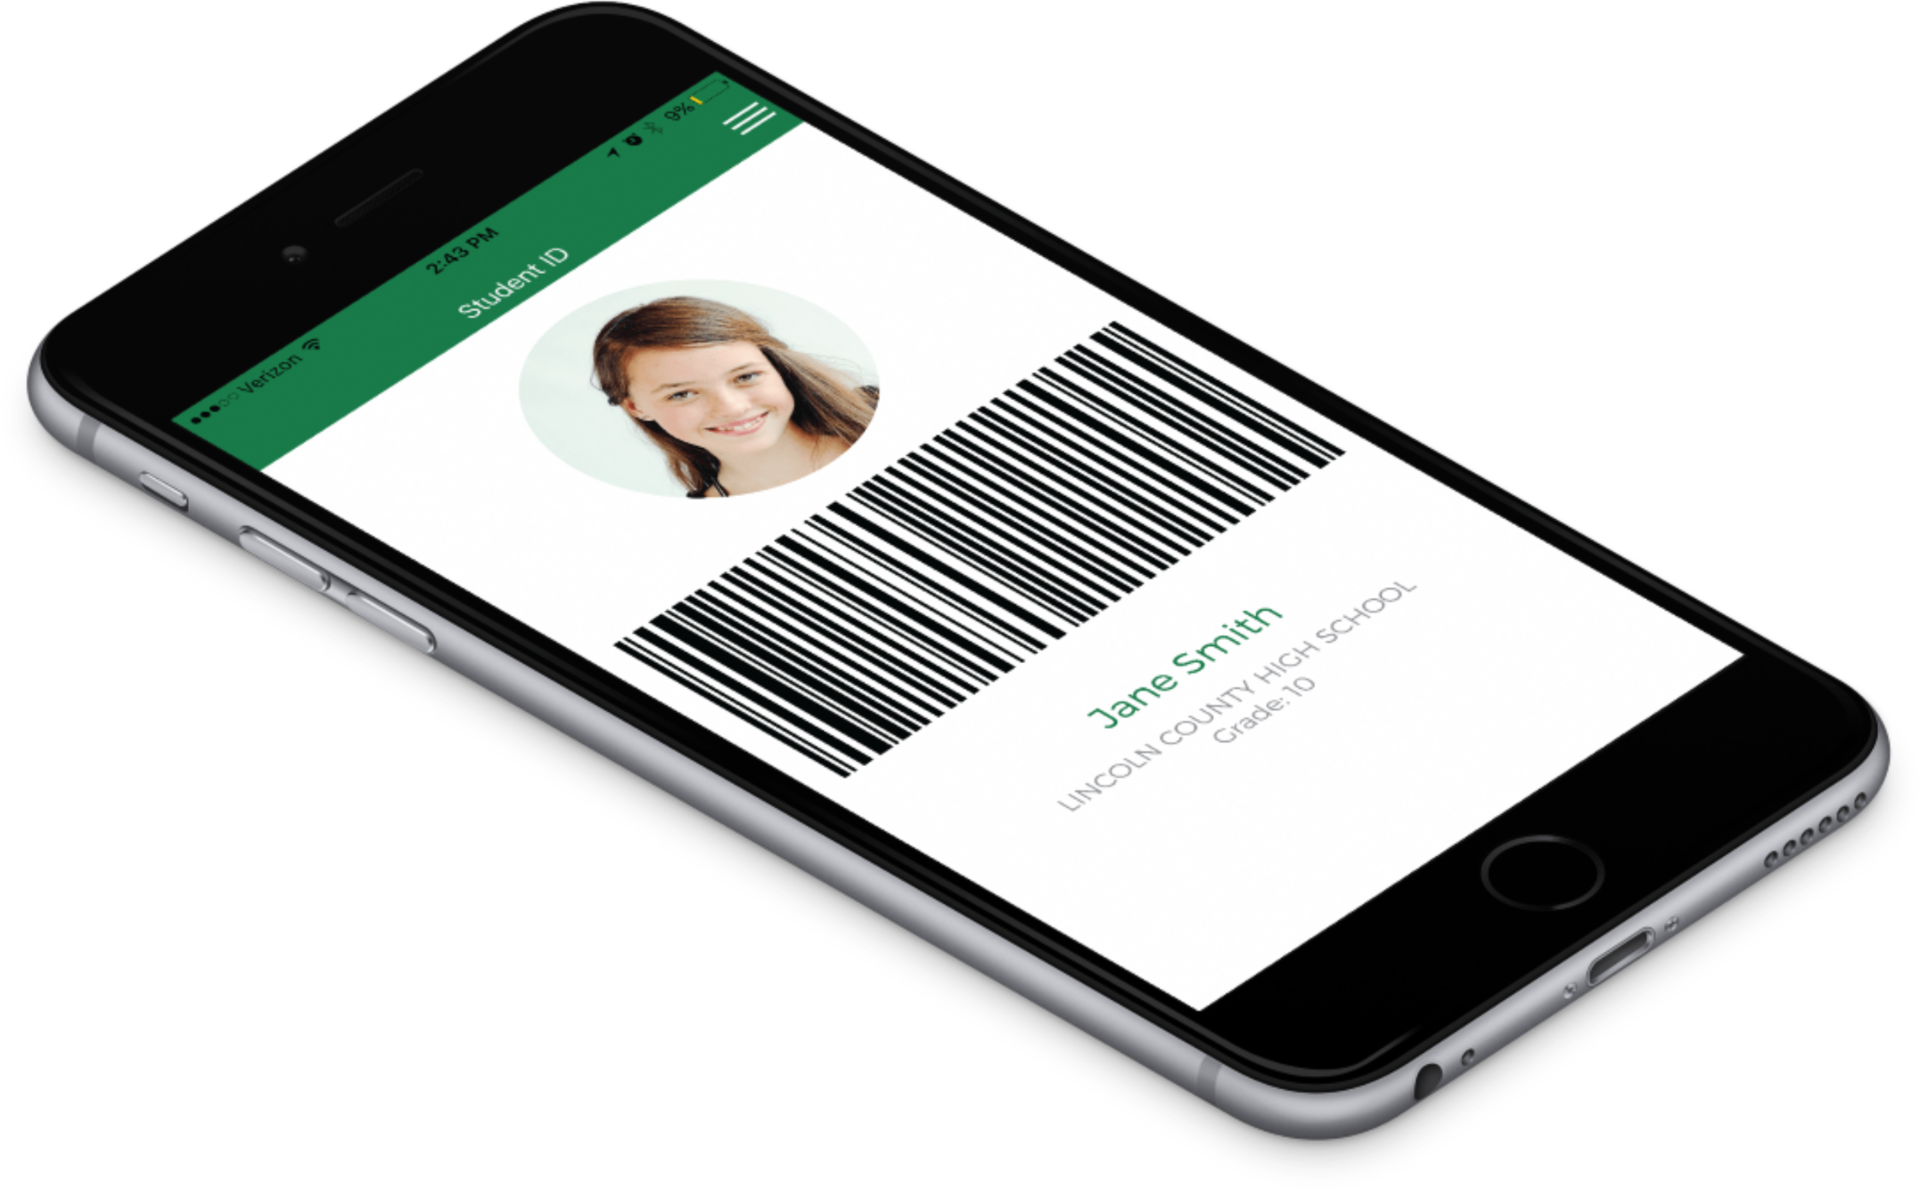 photo of bar code on a mobile device